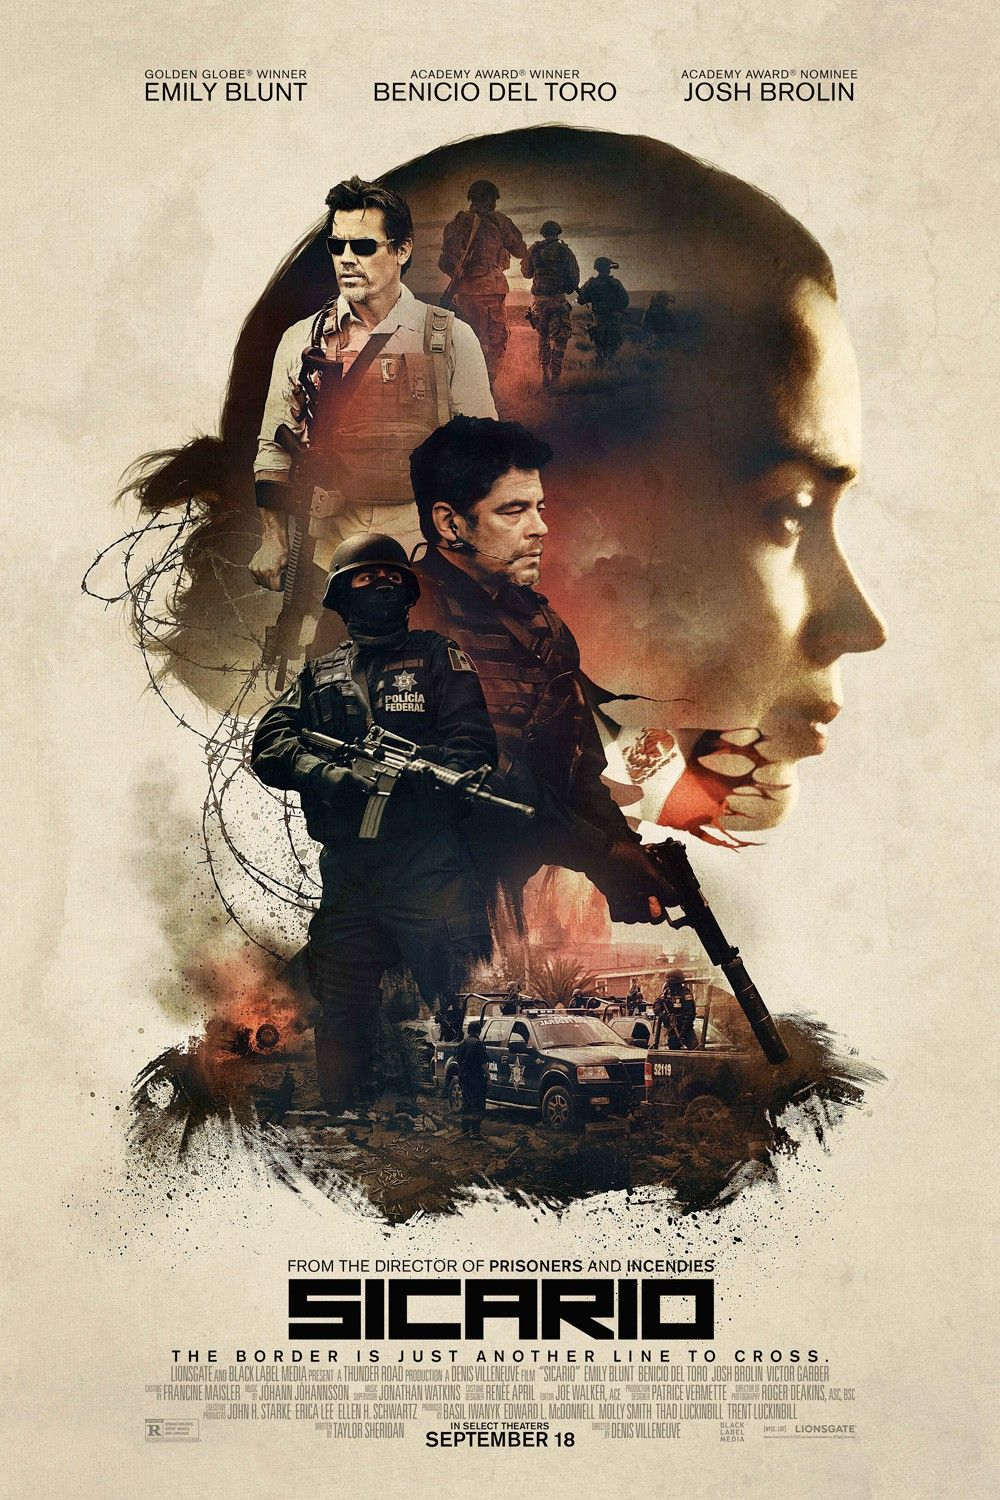 Sicario Extra Large Movie Poster Image Internet Movie Poster Awards Gallery Movies Online Full Movies Online Free Streaming Movies Free